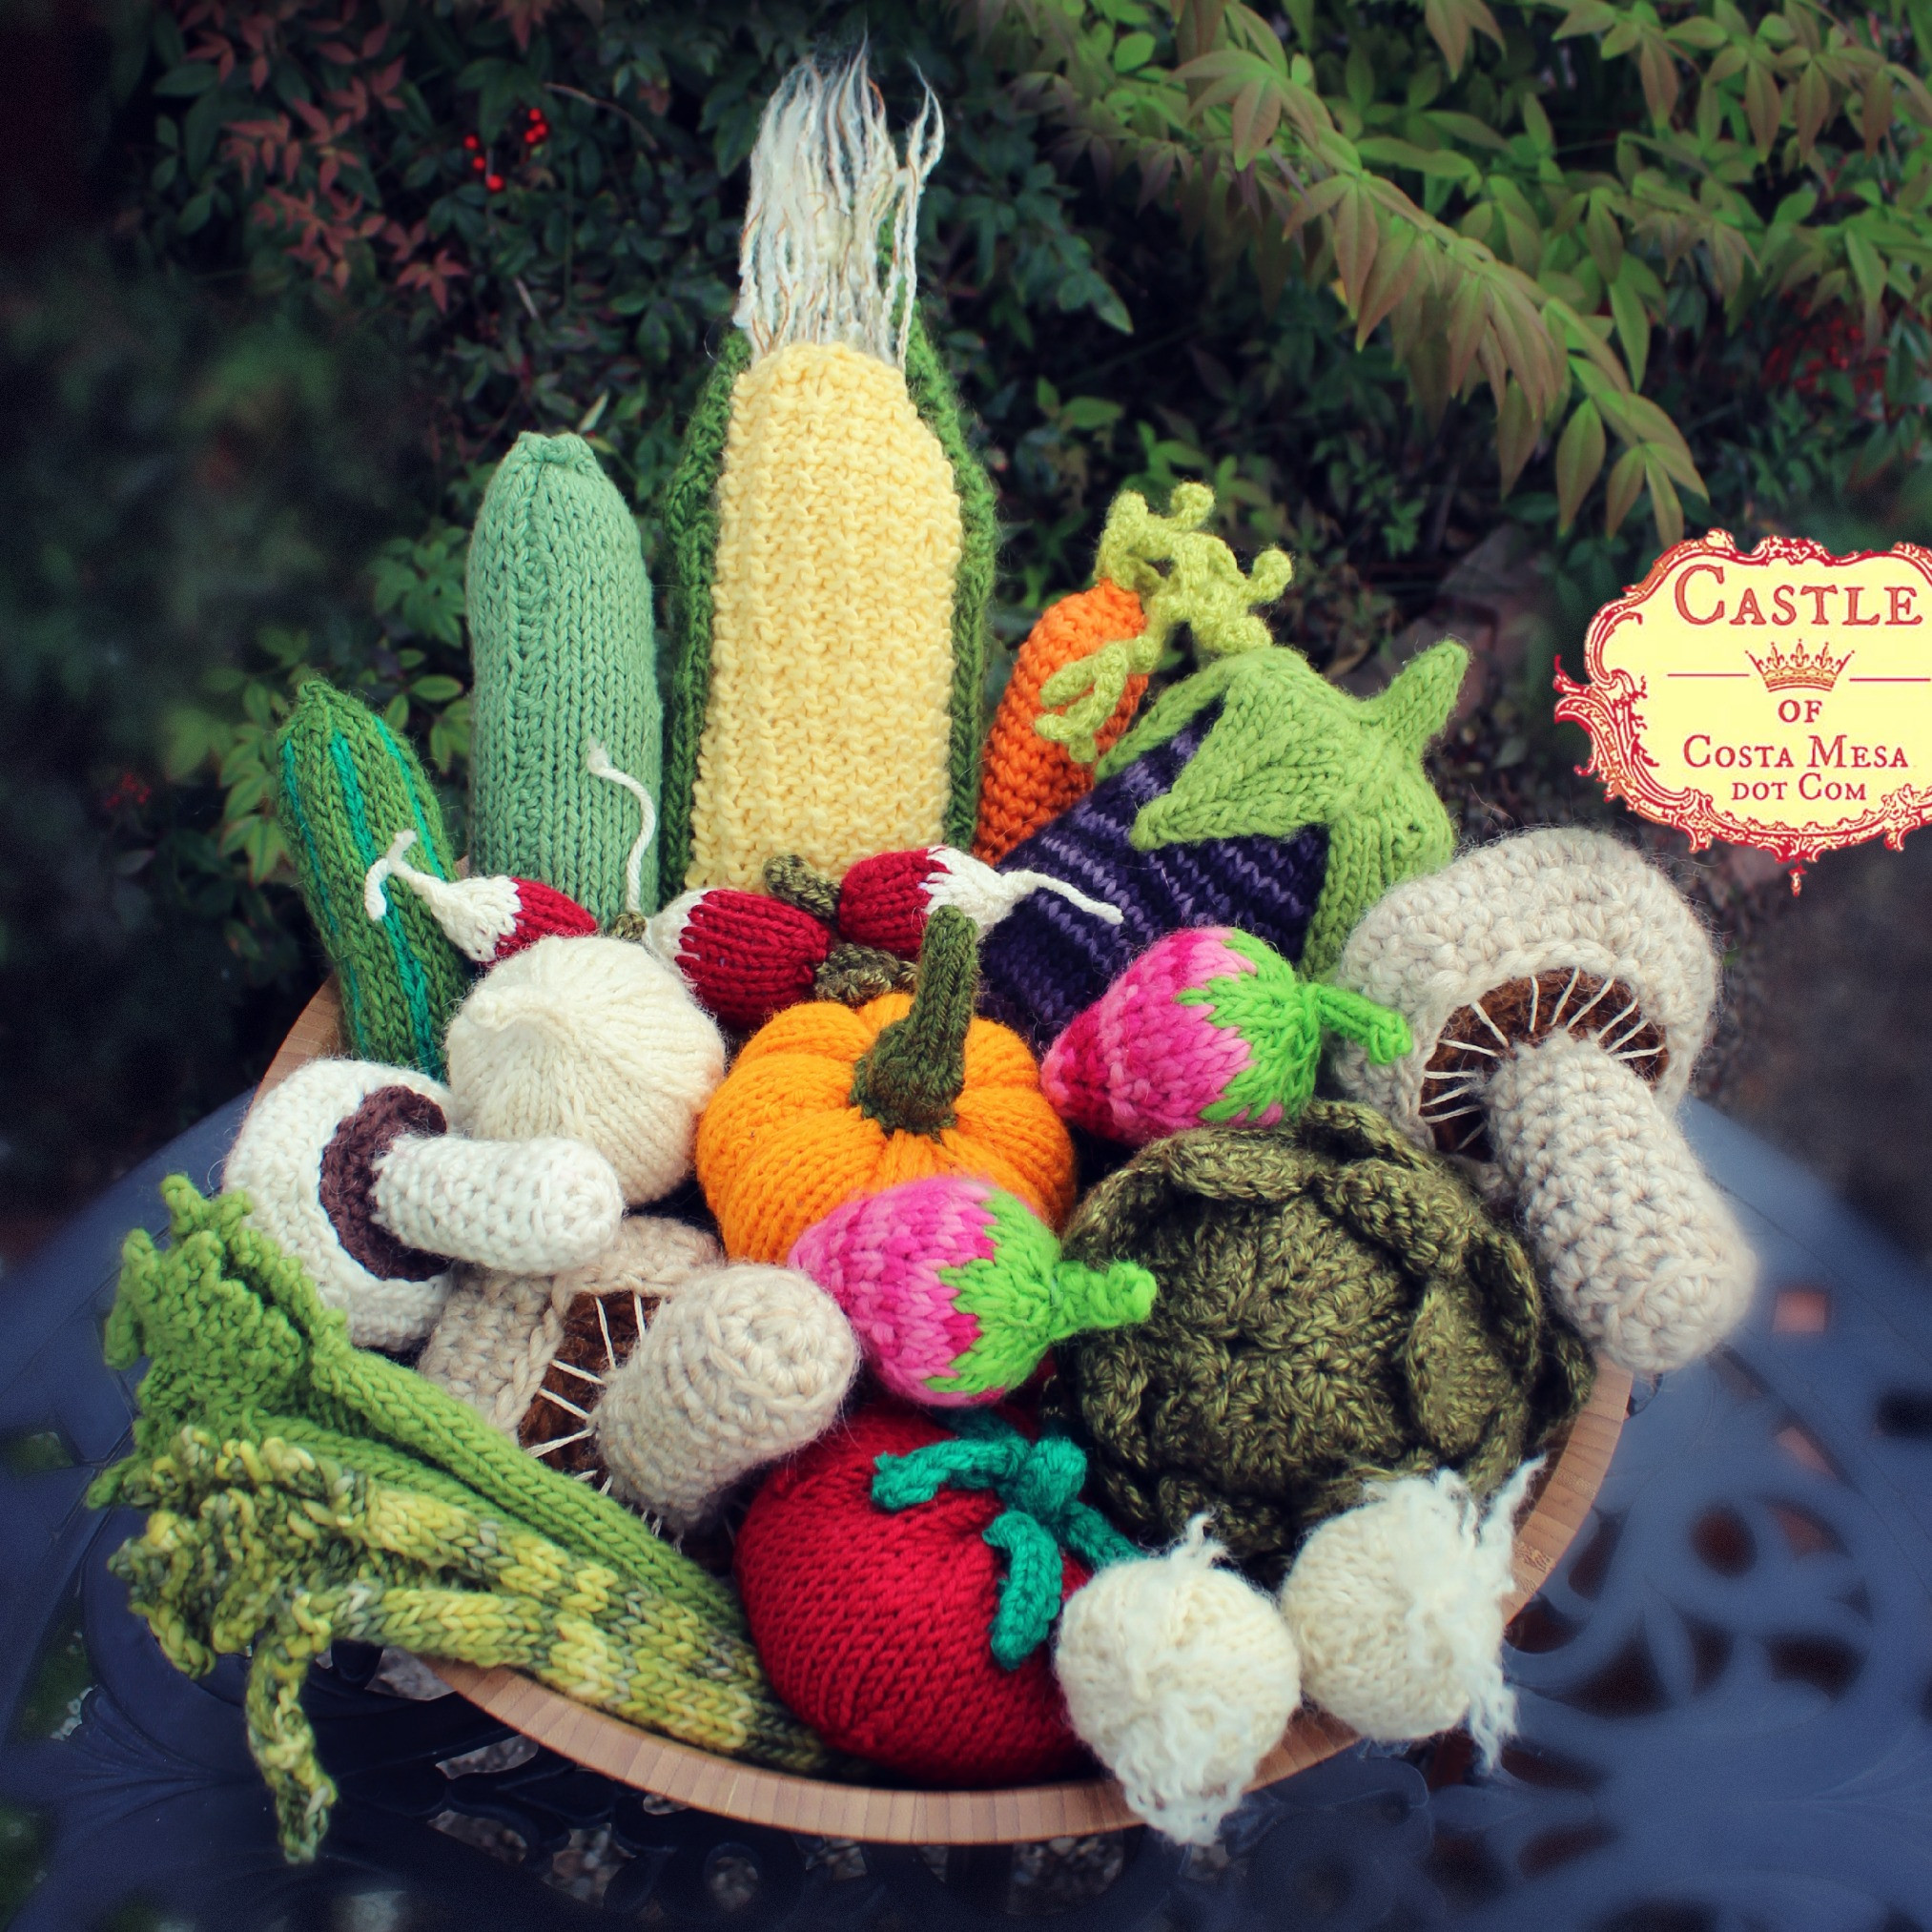 Knitting Patterns For Vegetables : Auction No. 615: A Testament of Abundance, Community and Handmade Love: The K...